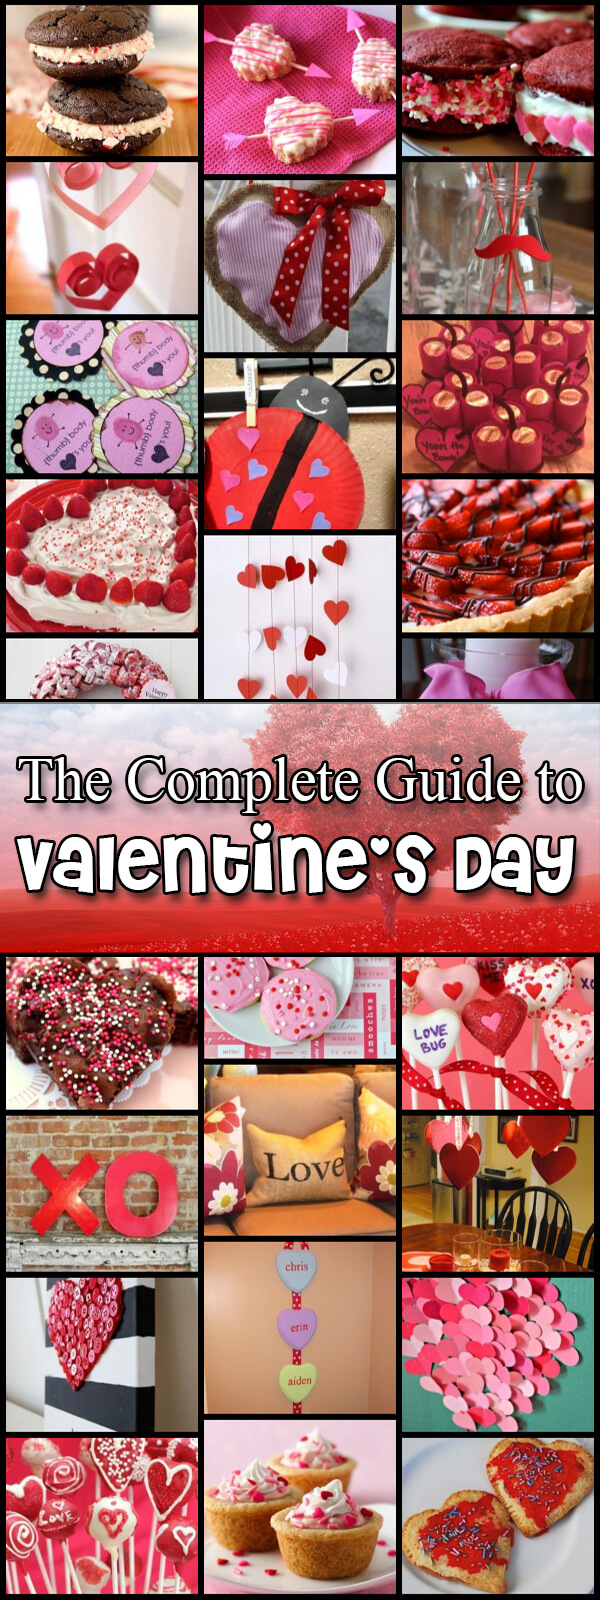 The Complete Guide to Valentine's Day - Holiday Vault